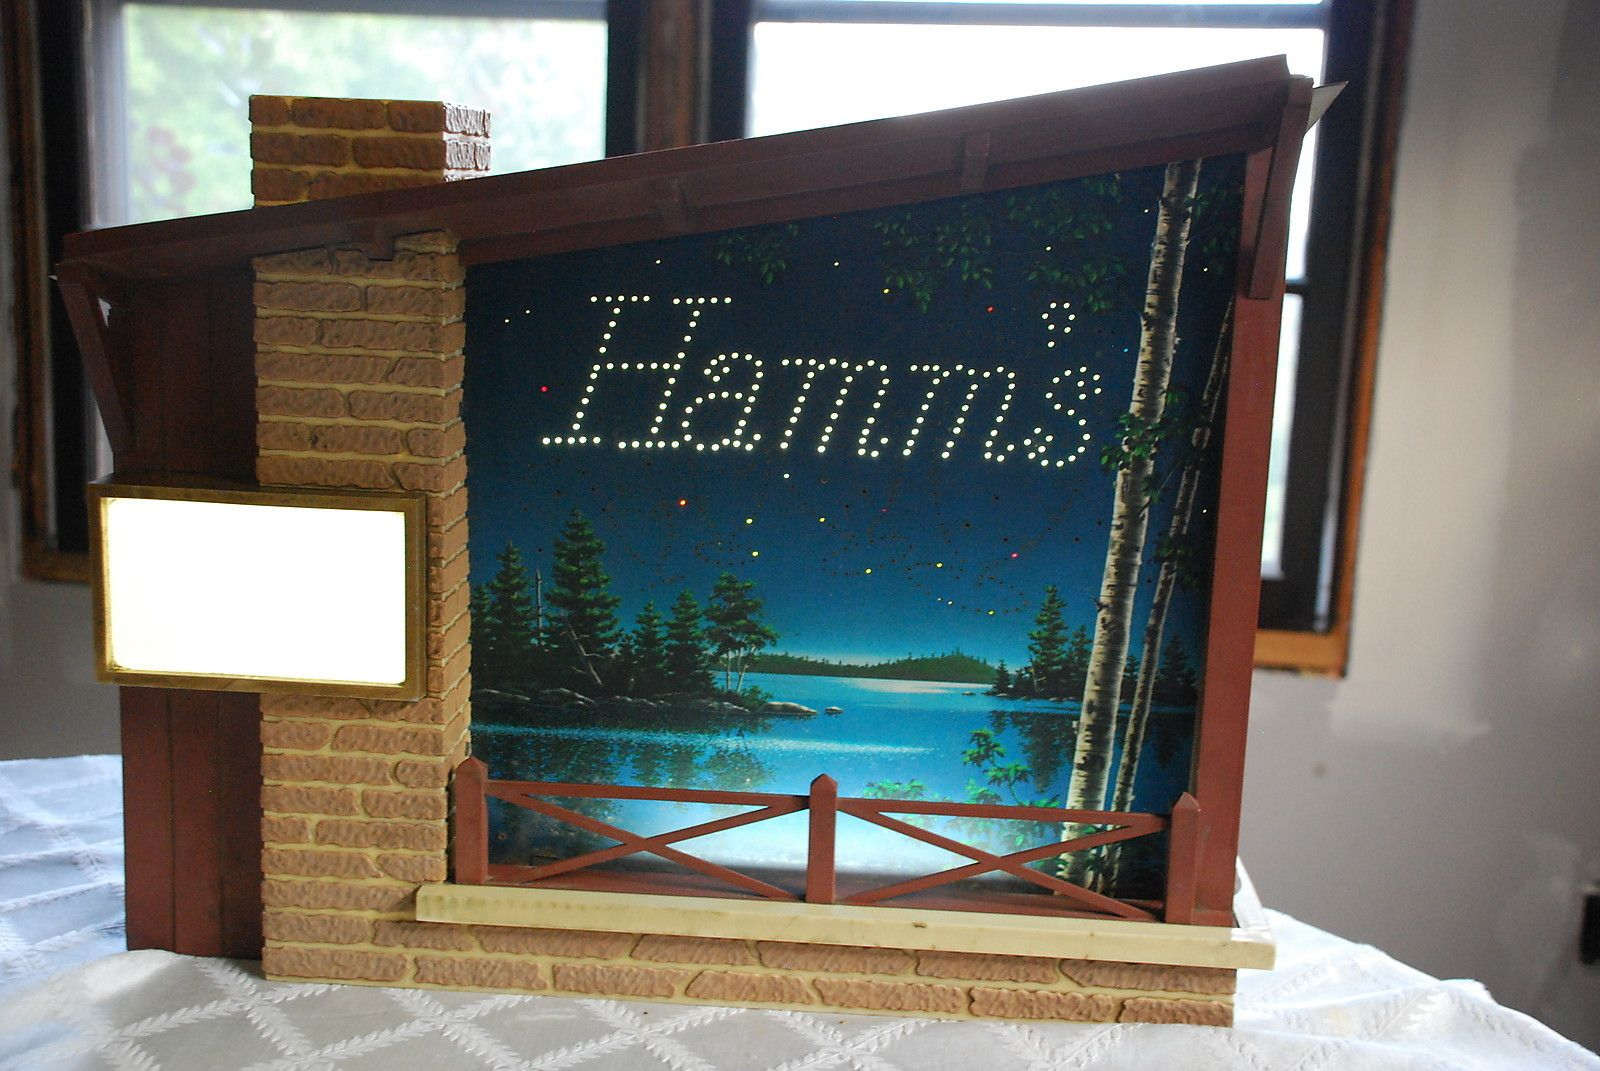 Pin By Barby Williams On Hamm S Beer Lamp Light Hamms Beer Advertising Signs